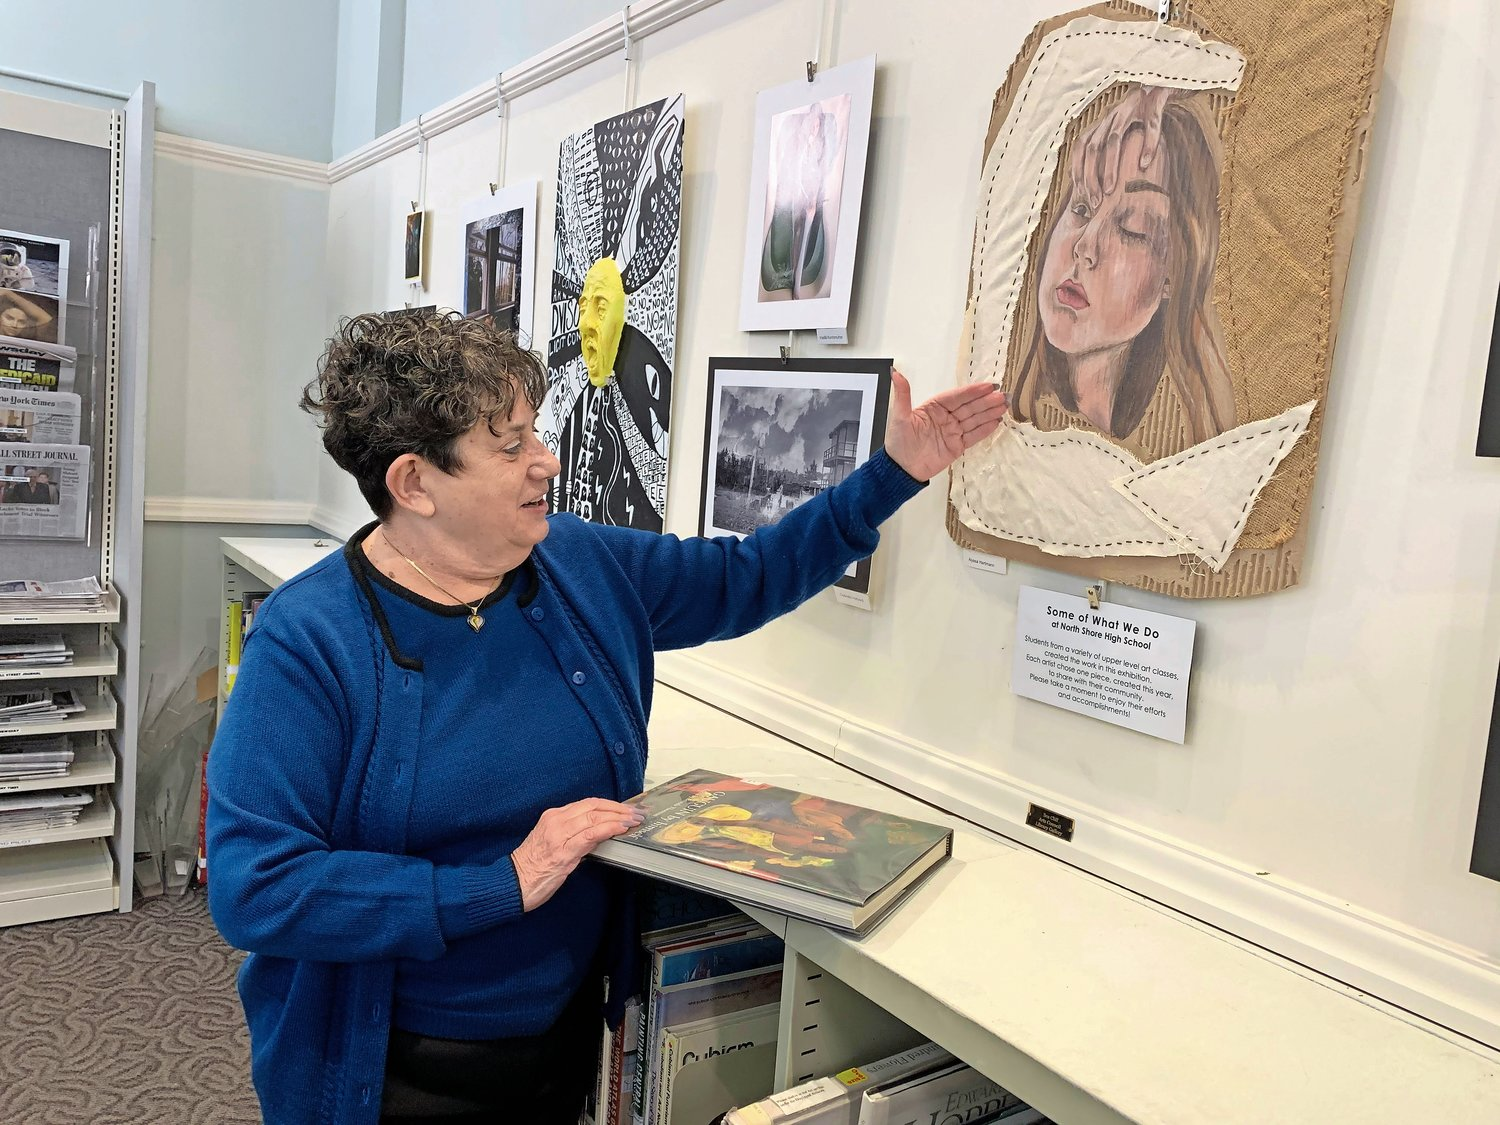 Sea Cliff Village Library Director Arlene Nevens said she loved being able to feature artwork by local artists and students.